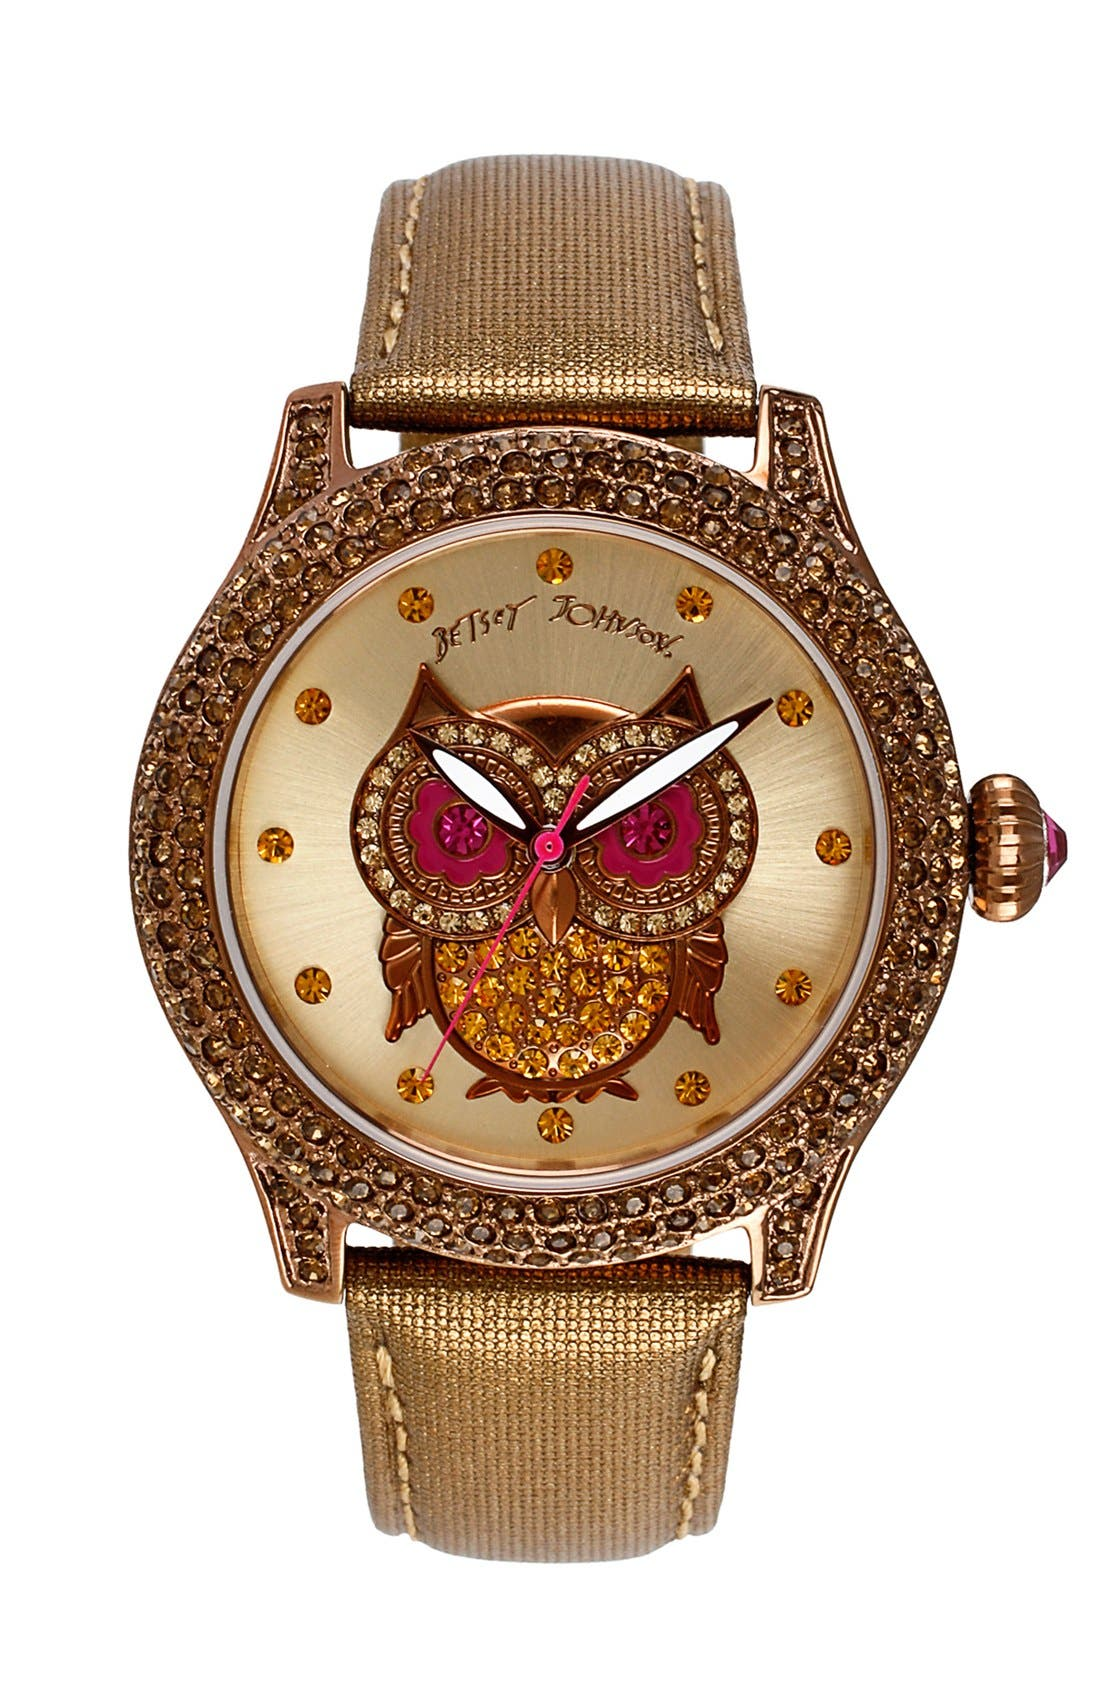 Main Image - Betsey Johnson 'Bling Bling Time' Owl Dial Watch, 40mm